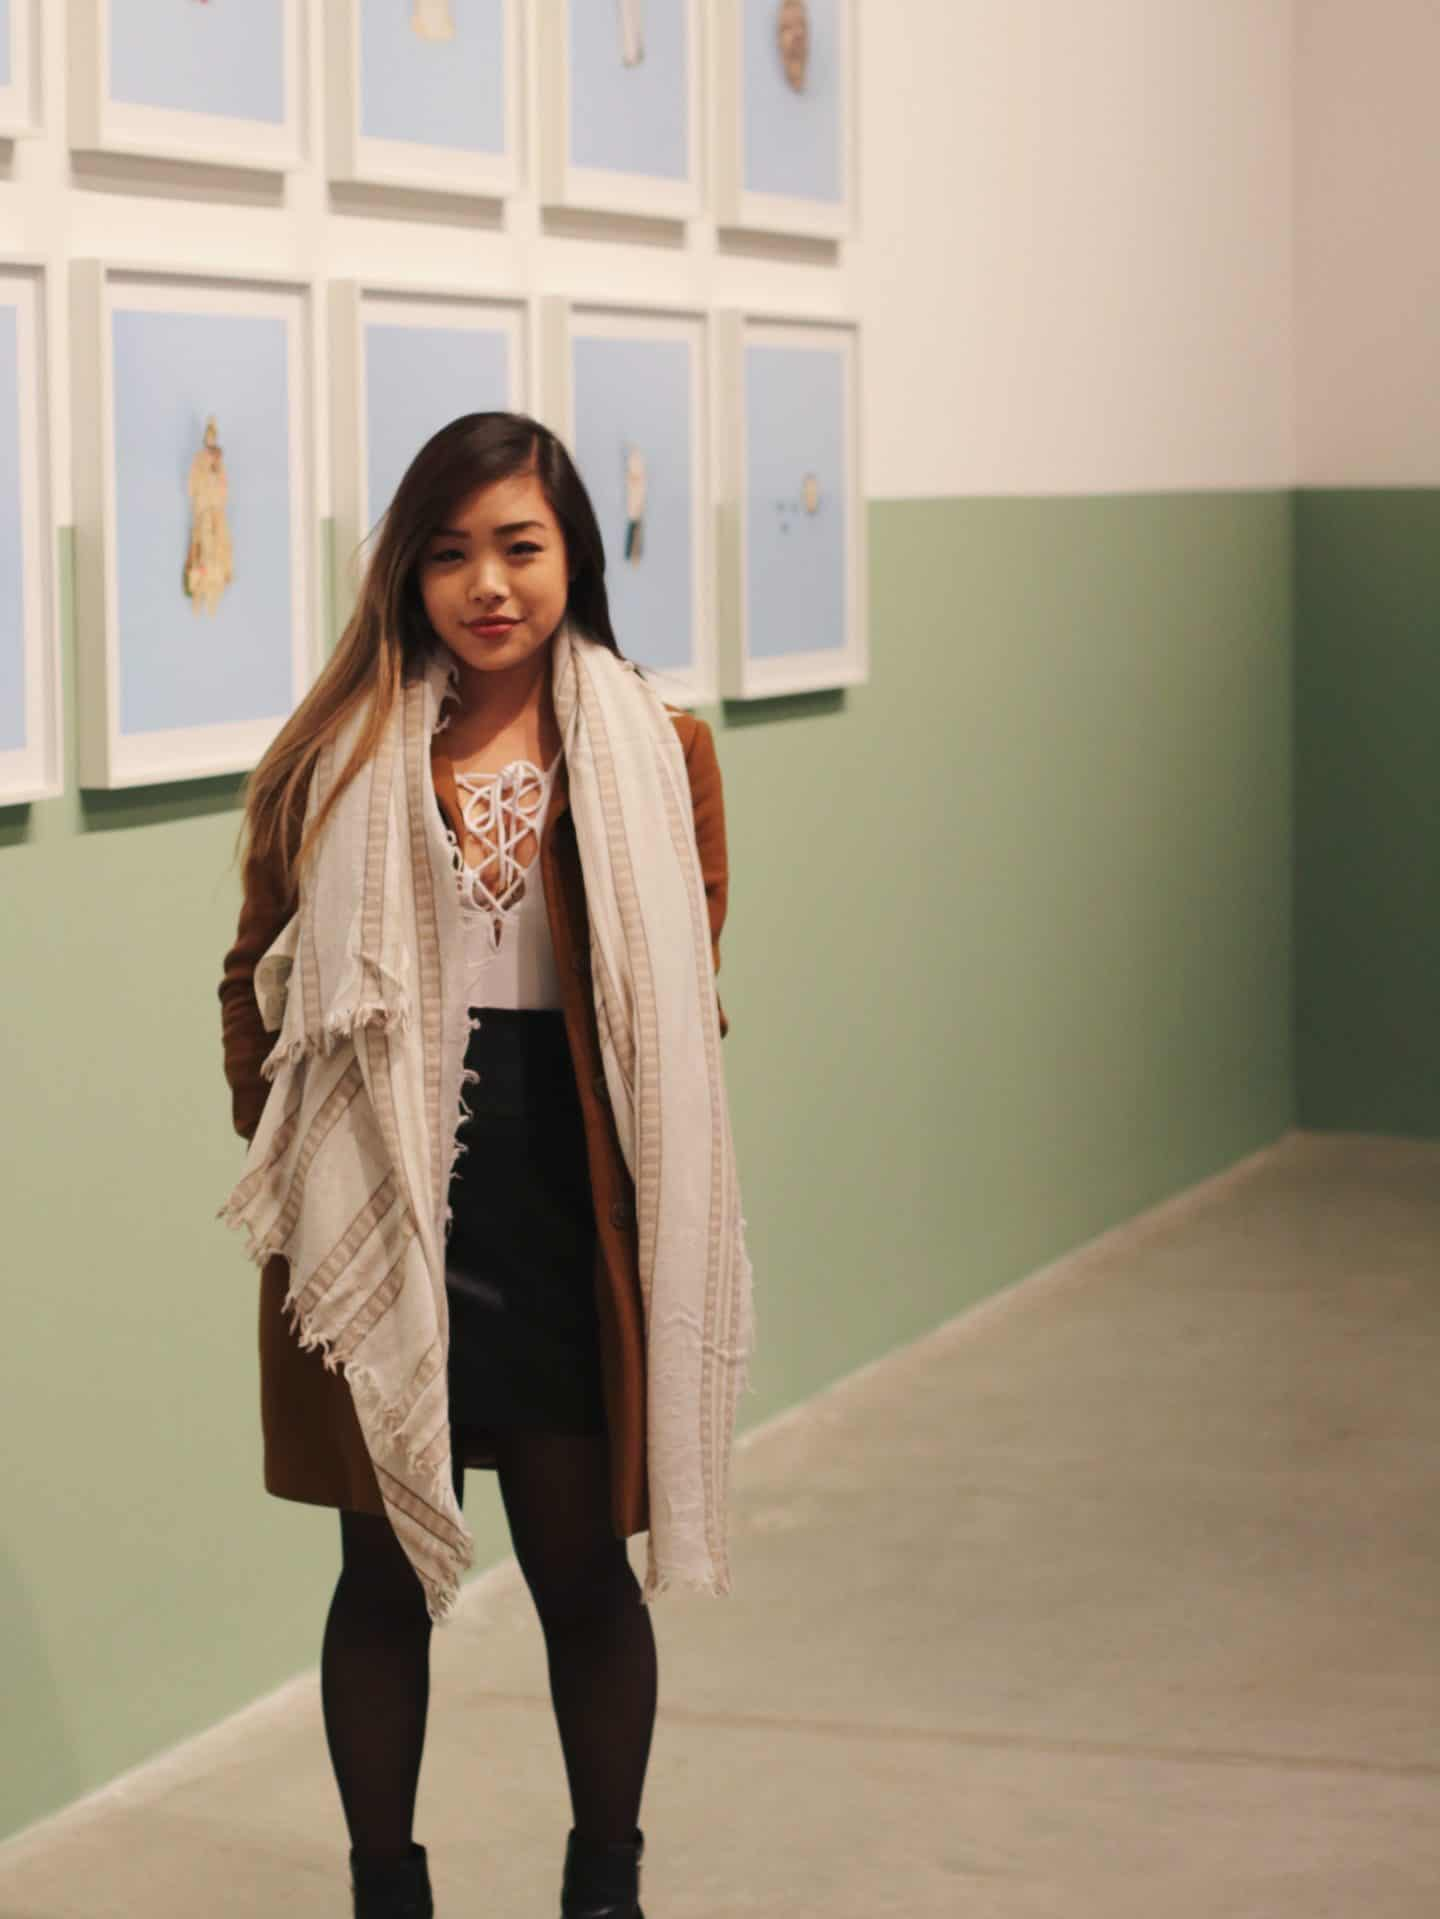 Winter outfit featuring white lace up bodysuit and black leather skirt